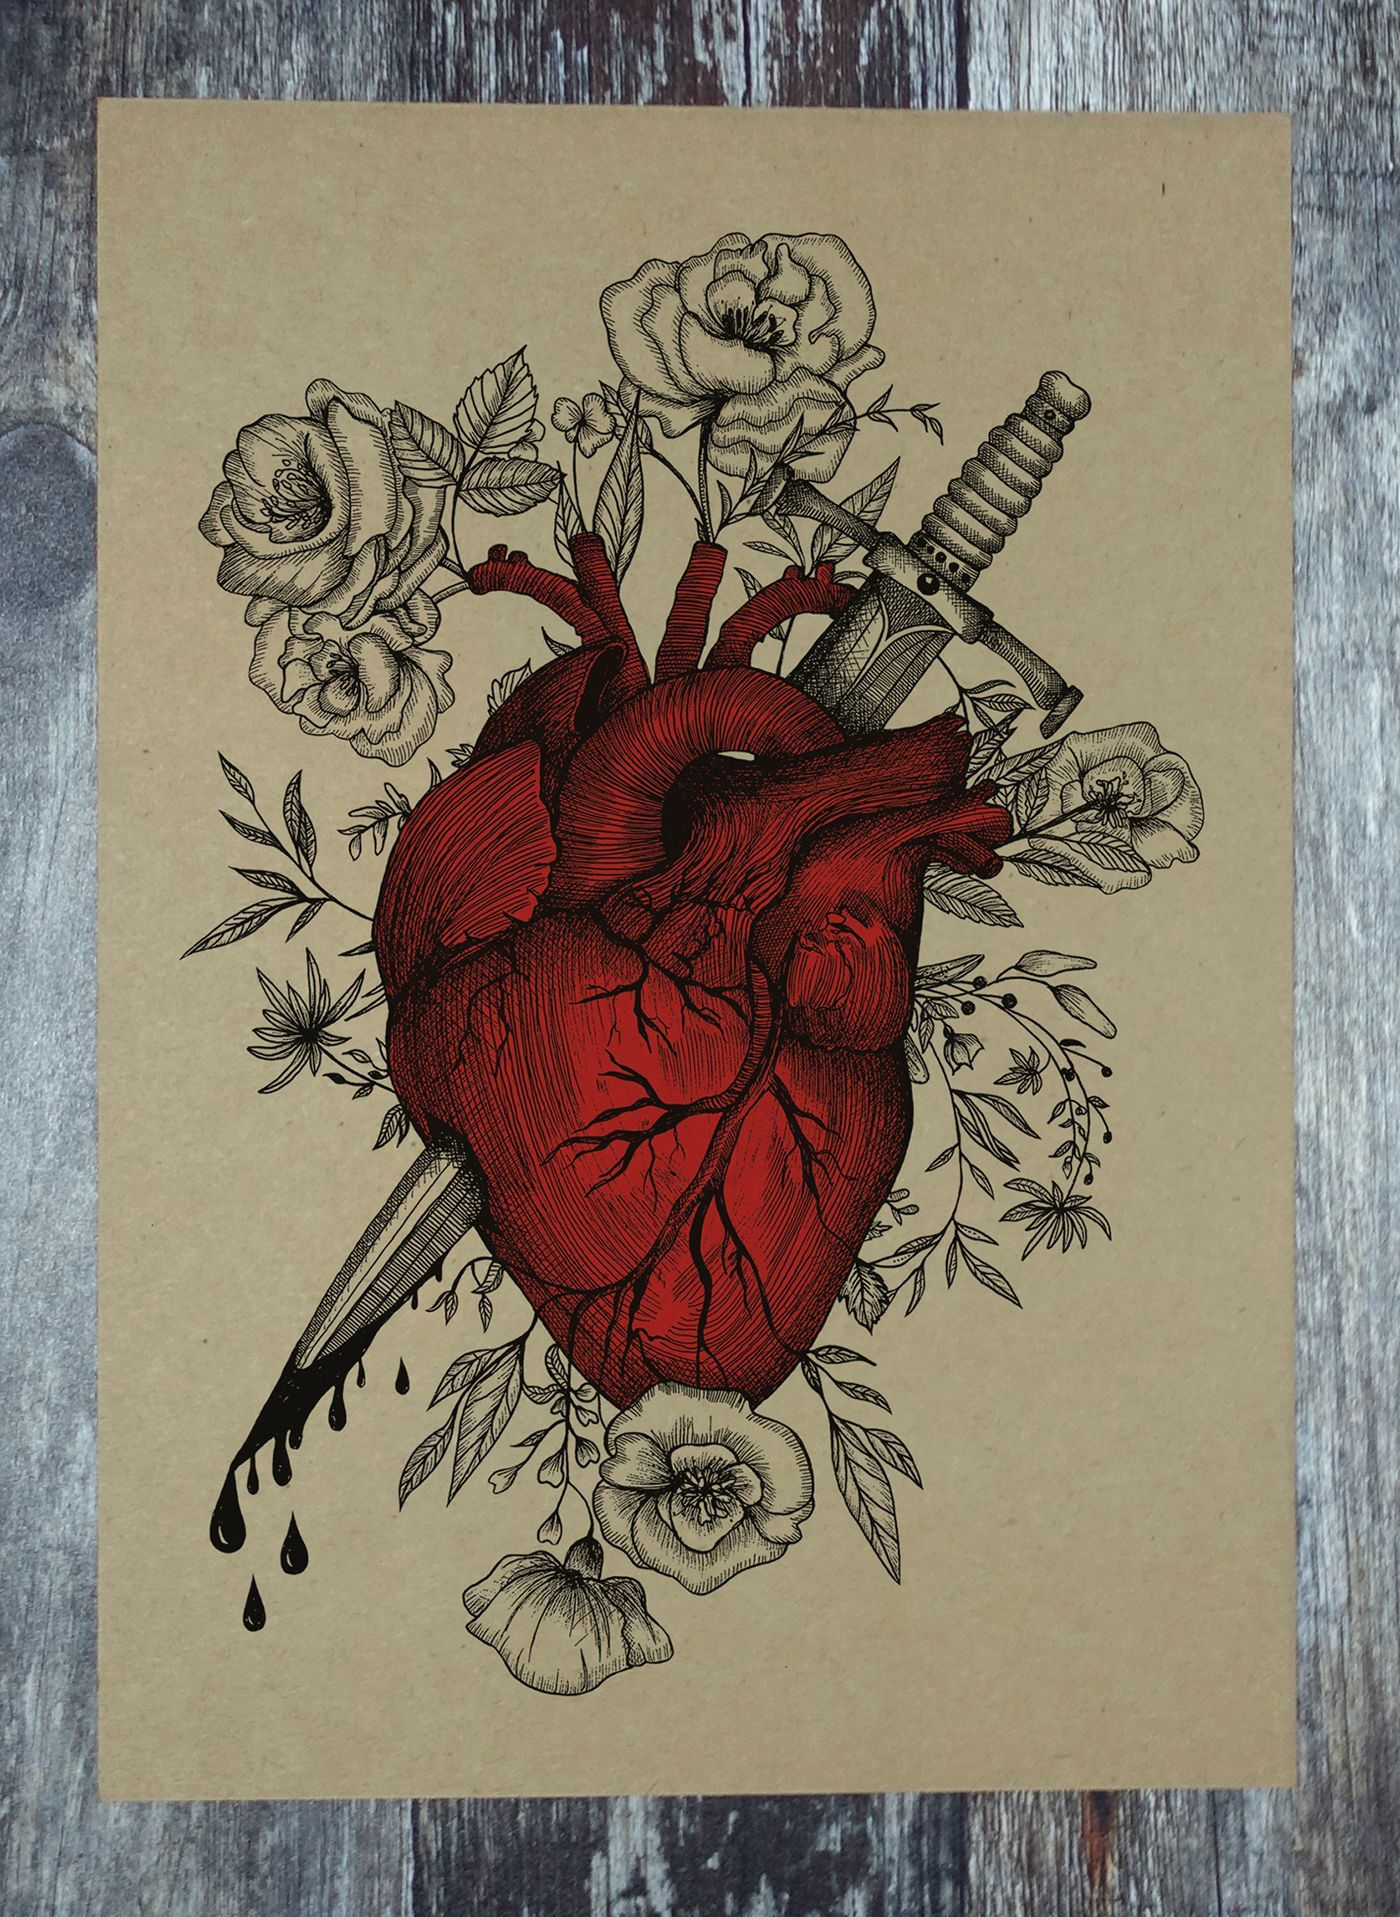 Bleeding Heart gothichome Anatomical heart drawing